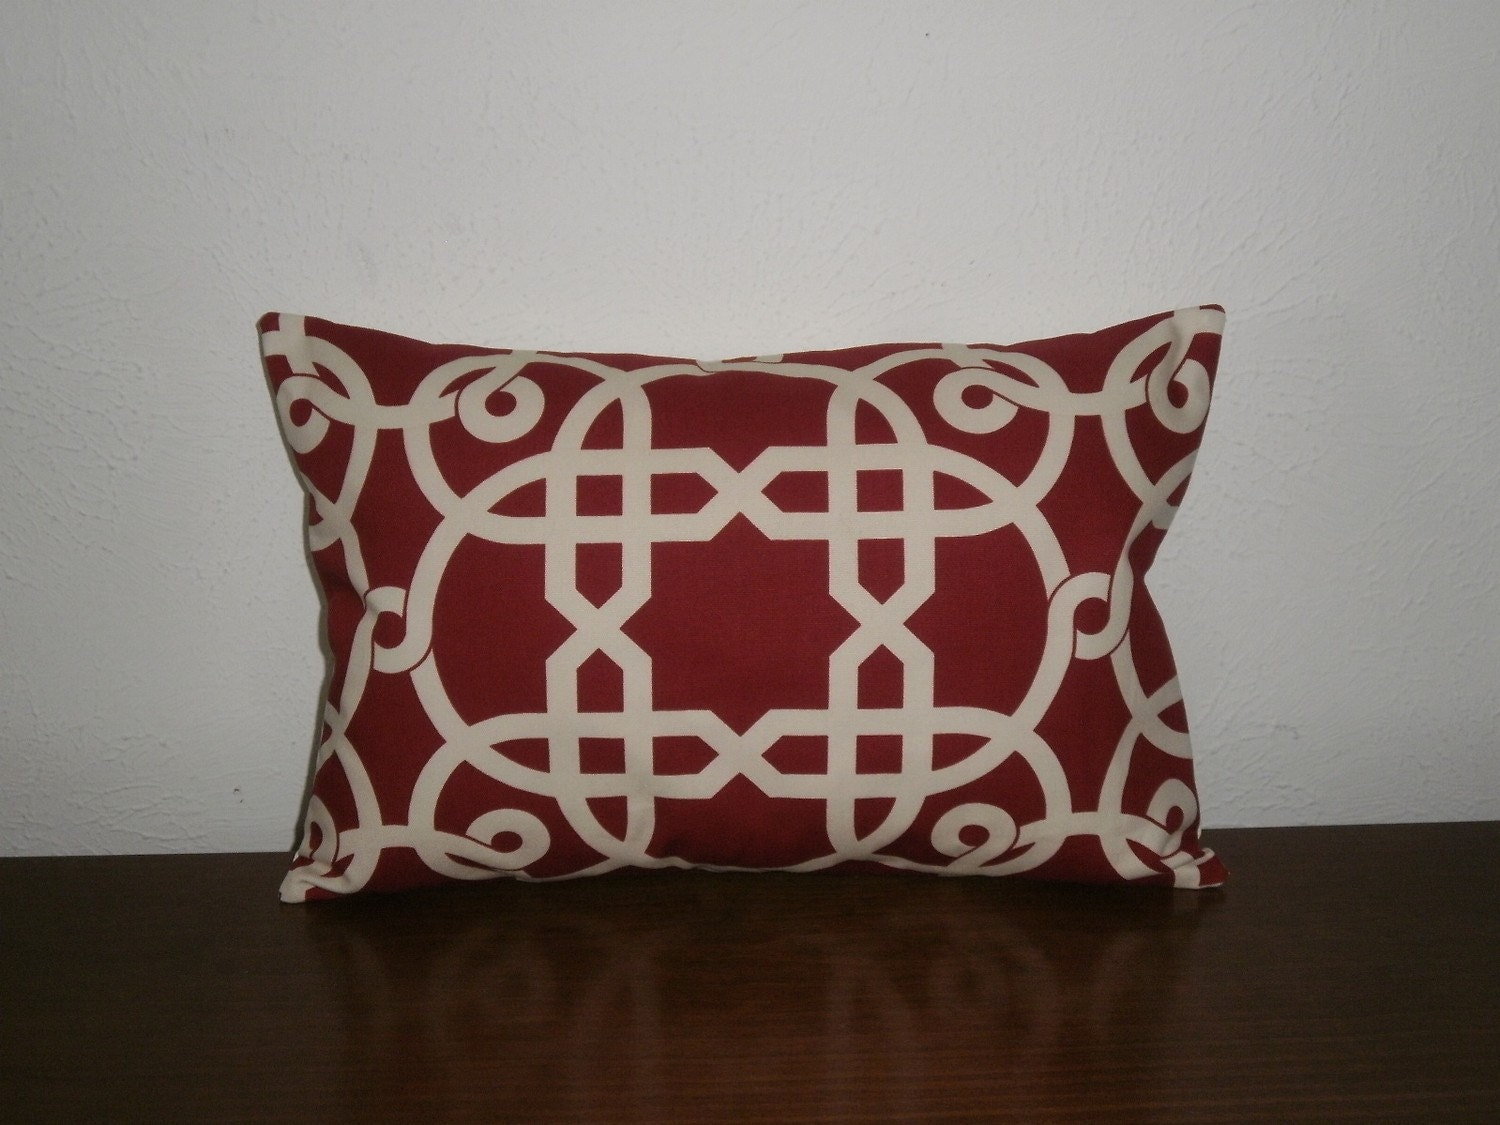 SALE..Decorative Pillow Cover 12 X 17 1/2 inch Geometric